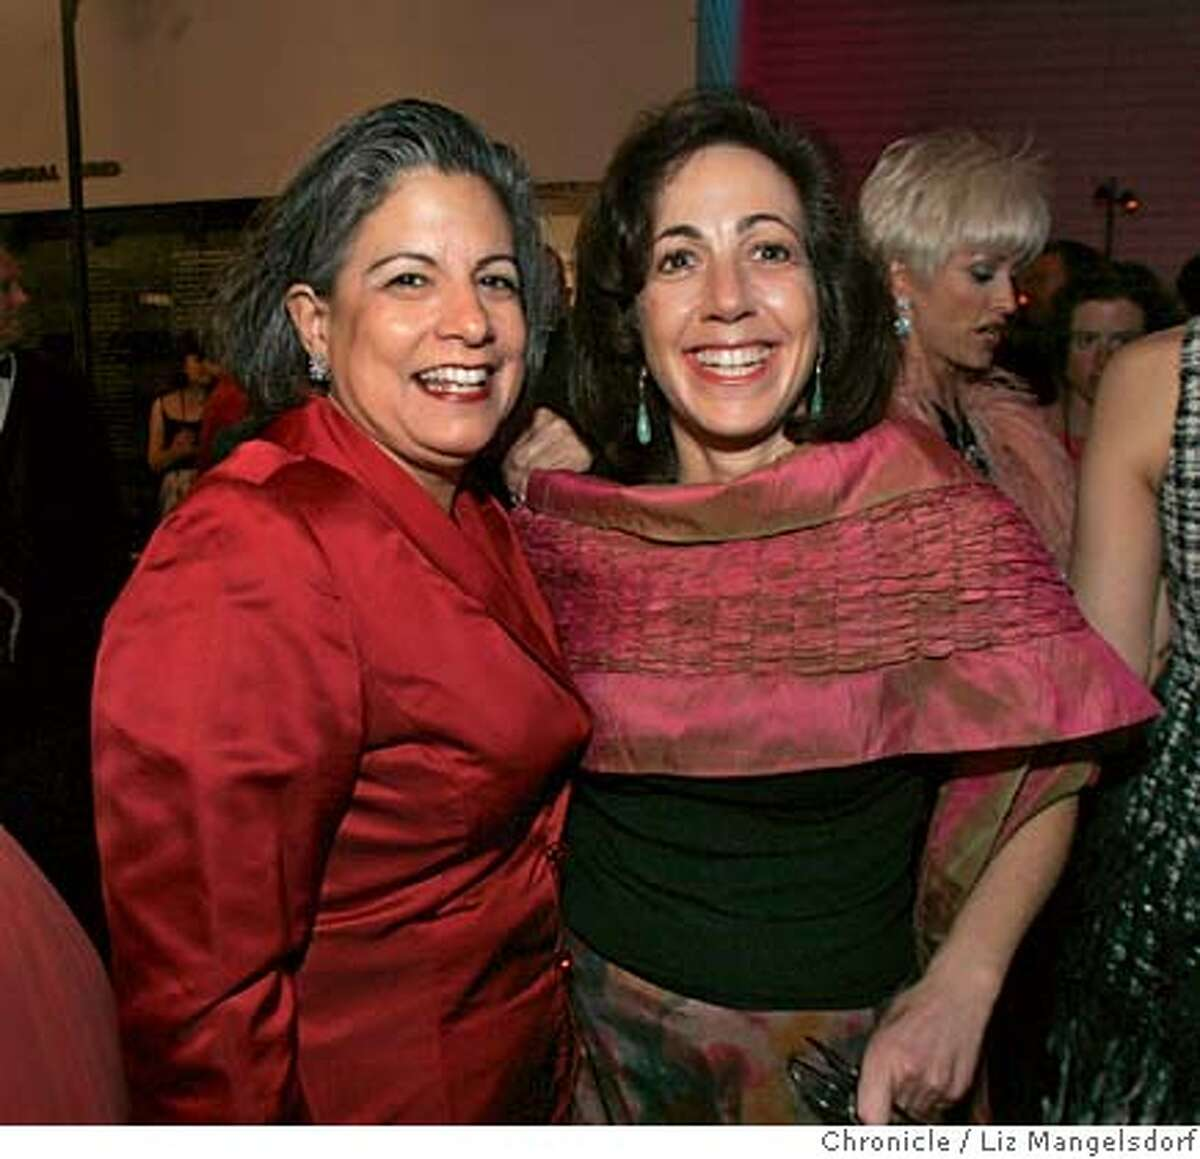 modern07_058_lm.JPG Event on 5/4/05 in San Francisco. SFMOMA's new gala: The Modern Ball, at the SFMOMA. Susan Leal, left, SF Public Utilities Commission General Manager and her partner Susan Hirsch. Liz Mangelsdorf / The Chronicle Ran on: 09-29-2006 Ran on: 09-29-2006 Ran on: 11-01-2006 Ran on: 11-01-2006 Ran on: 11-01-2006 Ran on: 11-01-2006 Ran on: 11-07-2006 Ran on: 11-07-2006 Ran on: 01-03-2007 Ran on: 01-03-2007 Ran on: 01-17-2007 Ran on: 01-17-2007 MANDATORY CREDIT FOR PHOTOG AND SF CHRONICLE/ -MAGS OUT